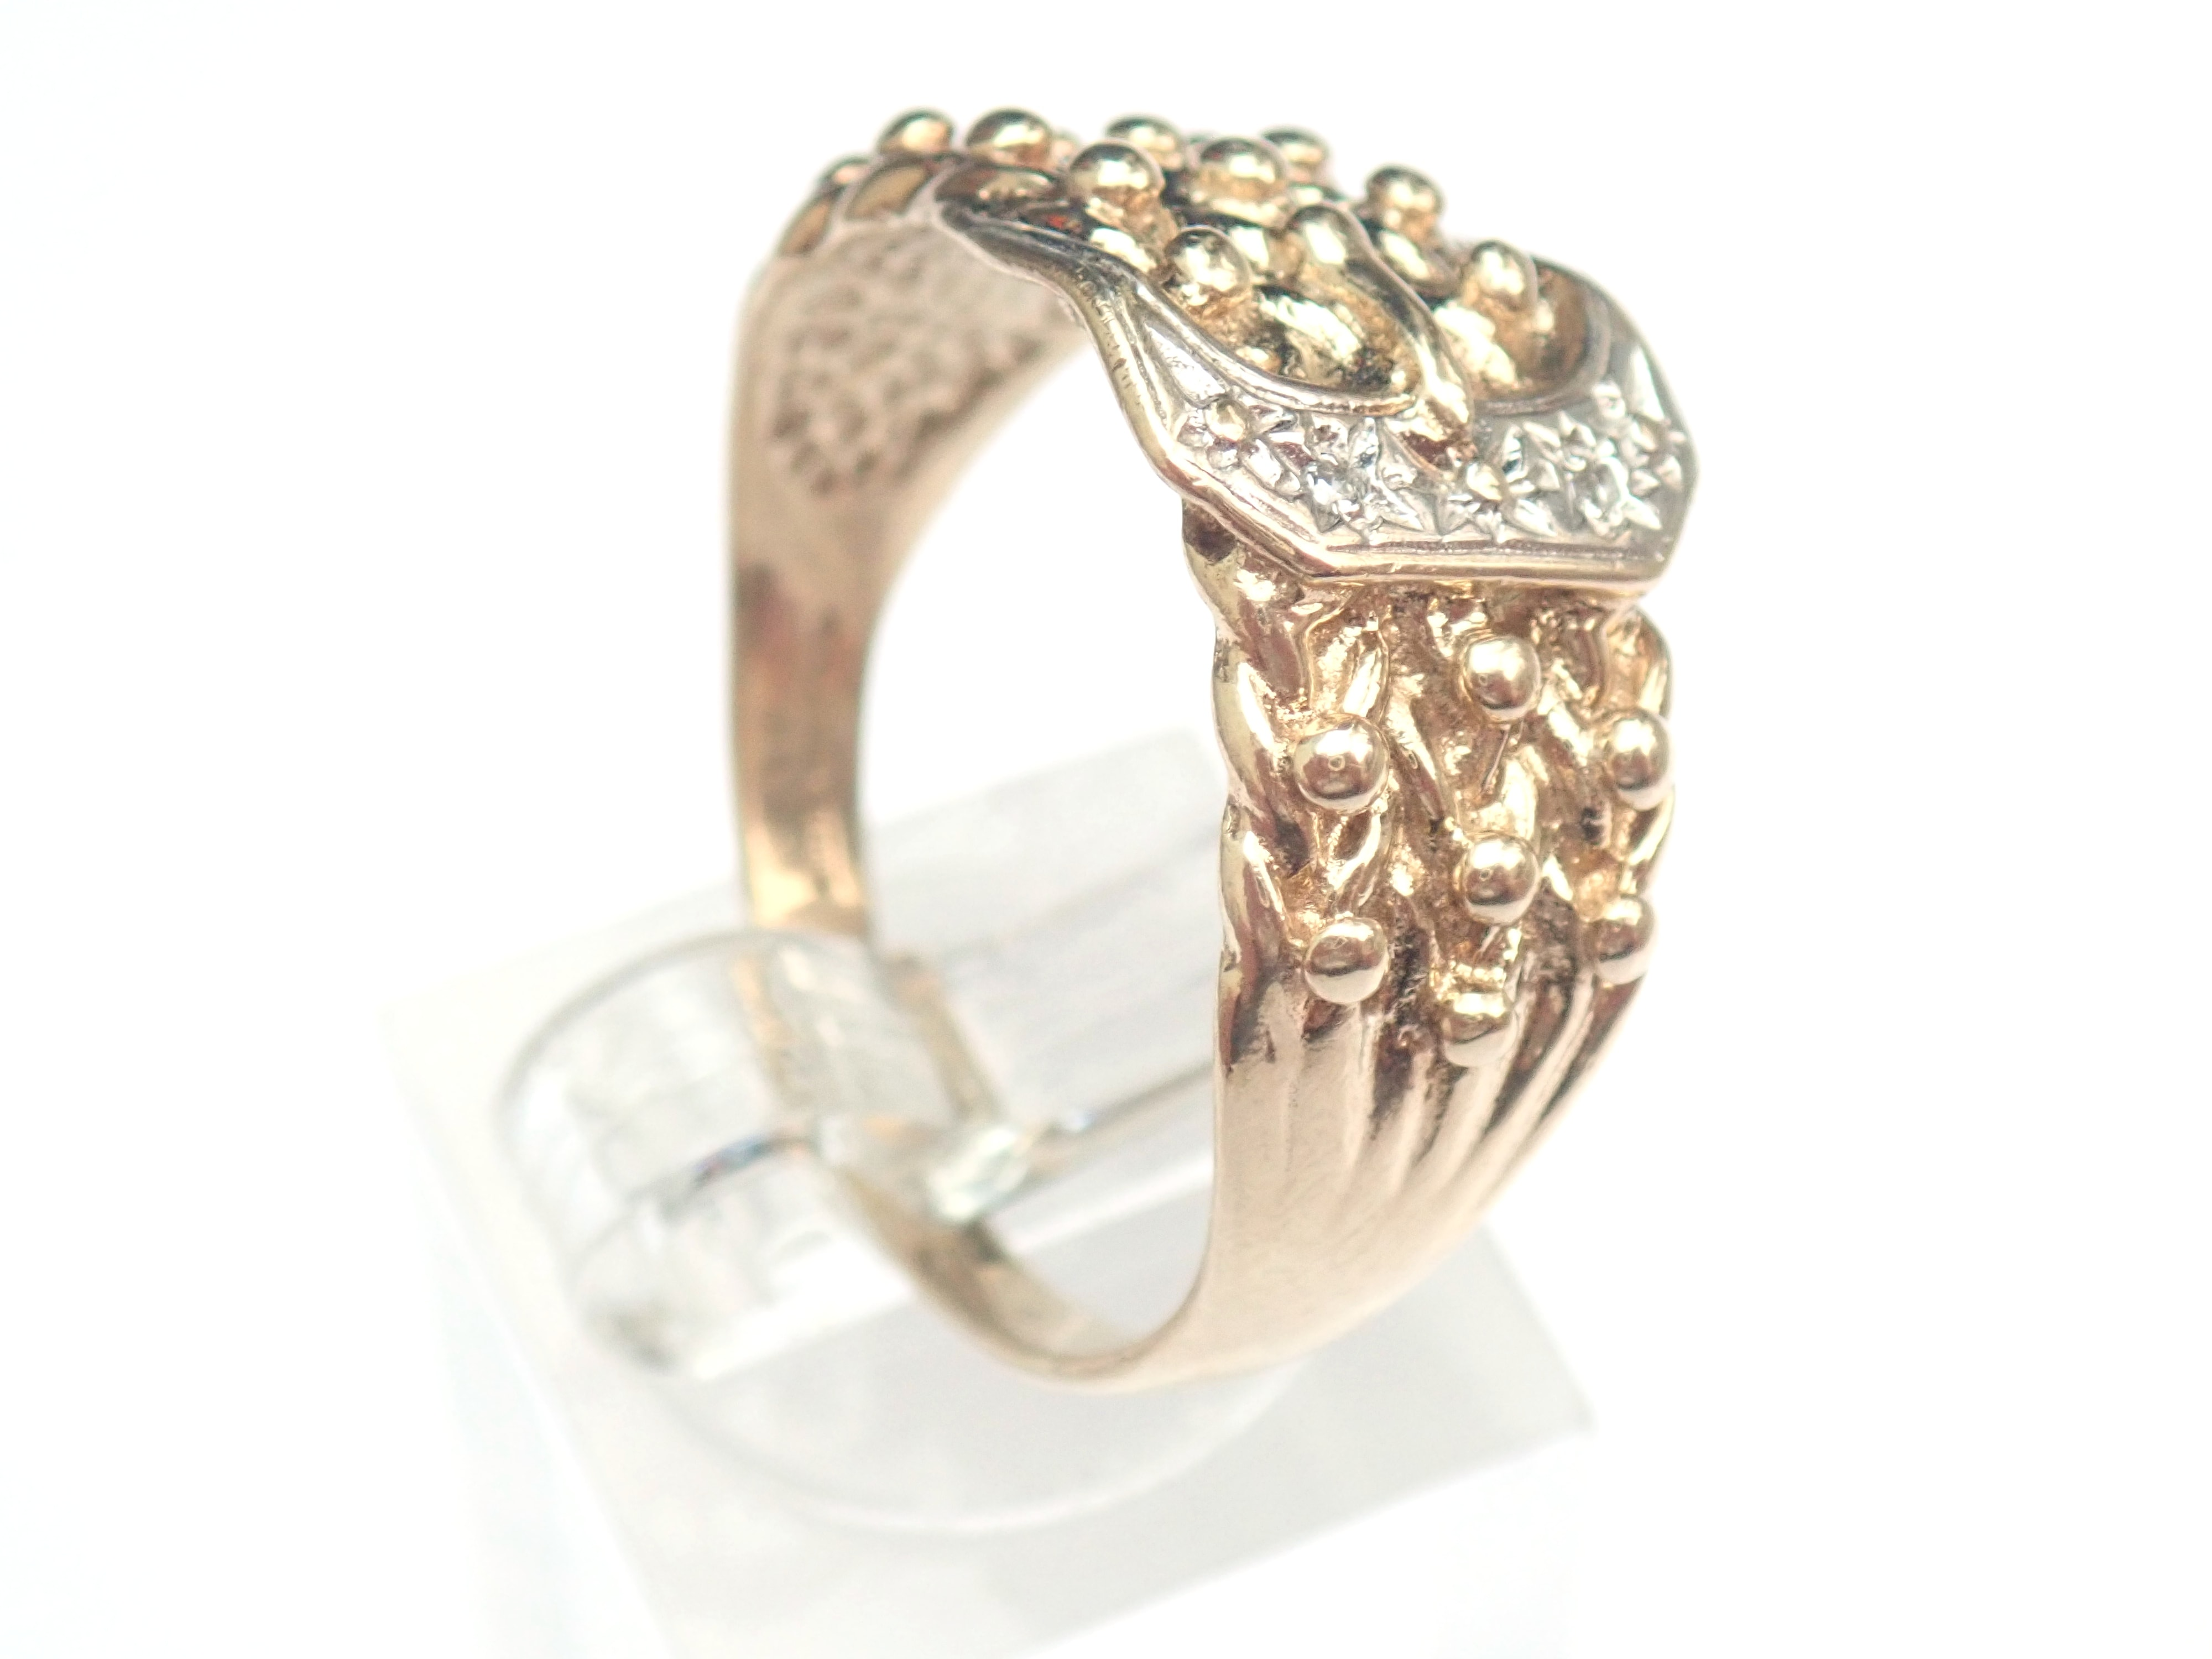 Vintage!! Diamond 9ct gold Buckle Keeper Ring 5.2gms Size W #210